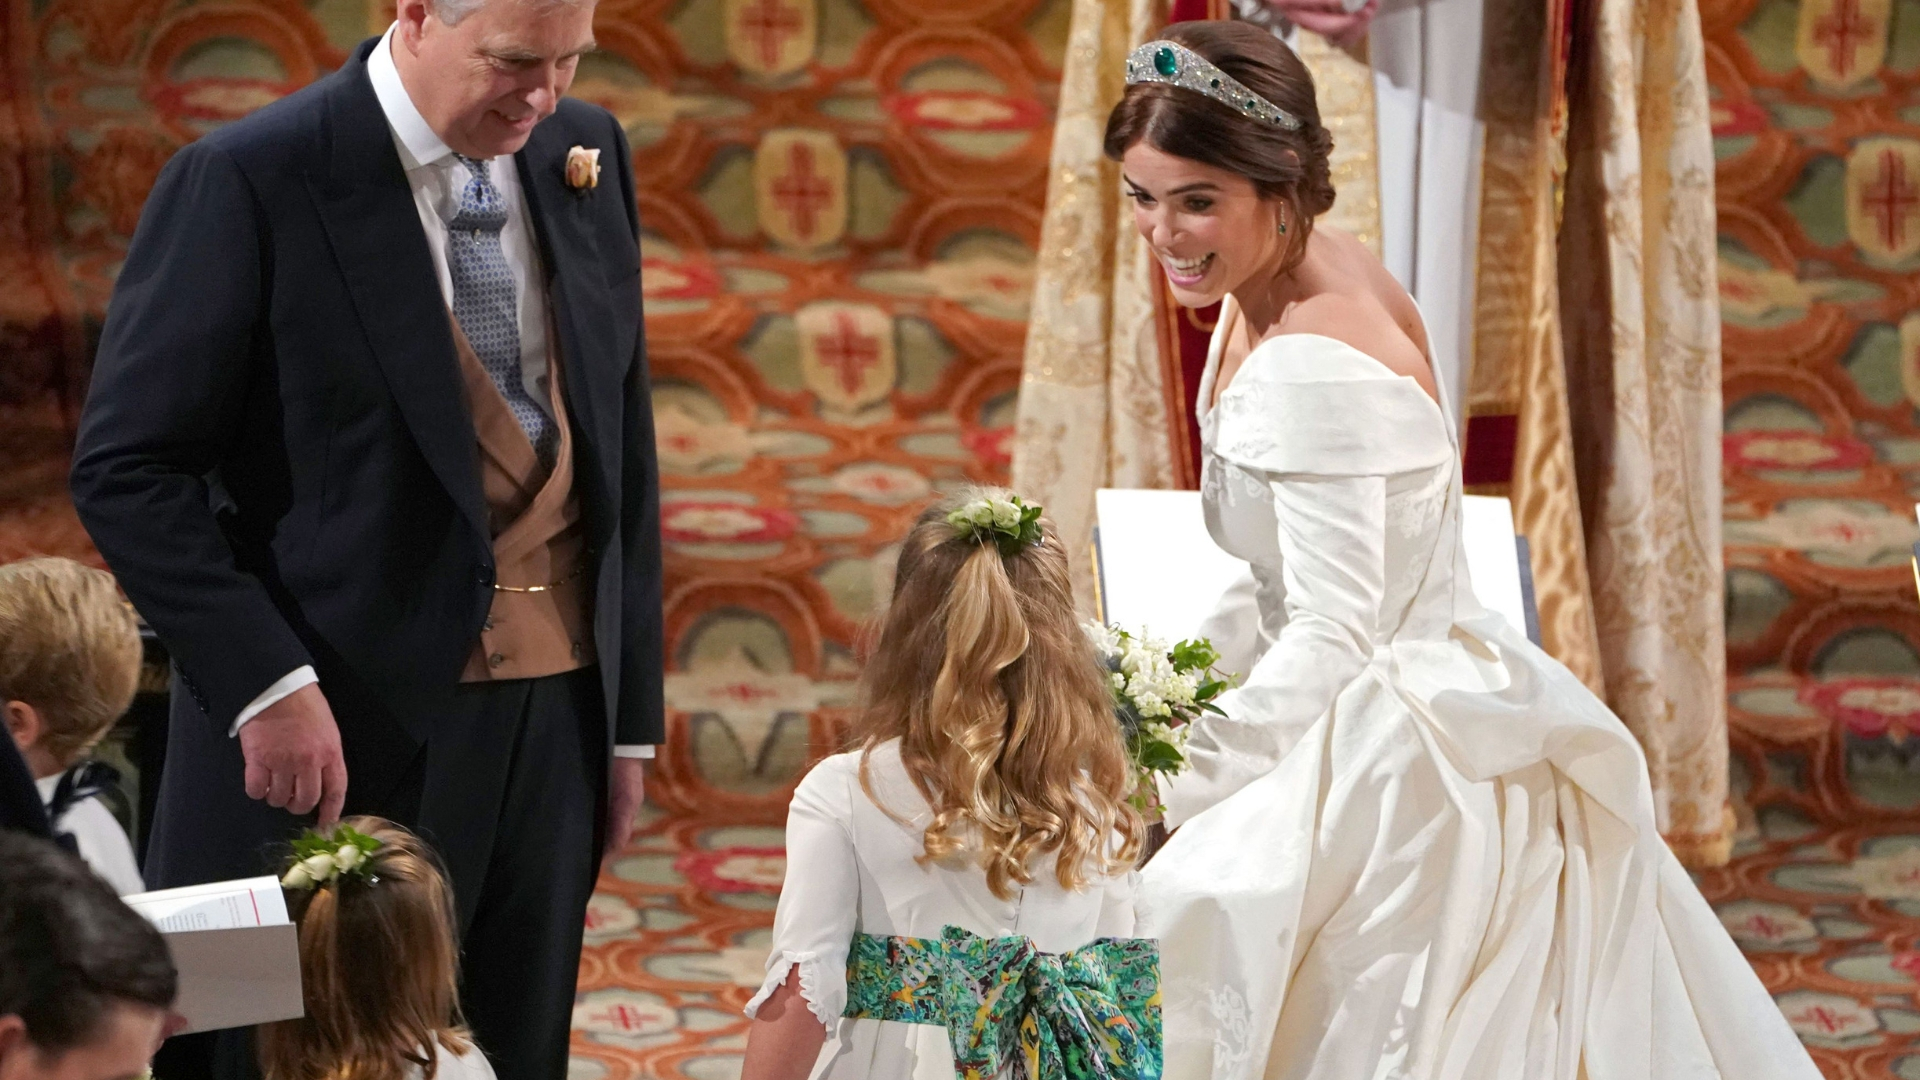 Who Is Peter Pilotto? Meet The Designer Behind Princess Eugenie's Wedding Gown